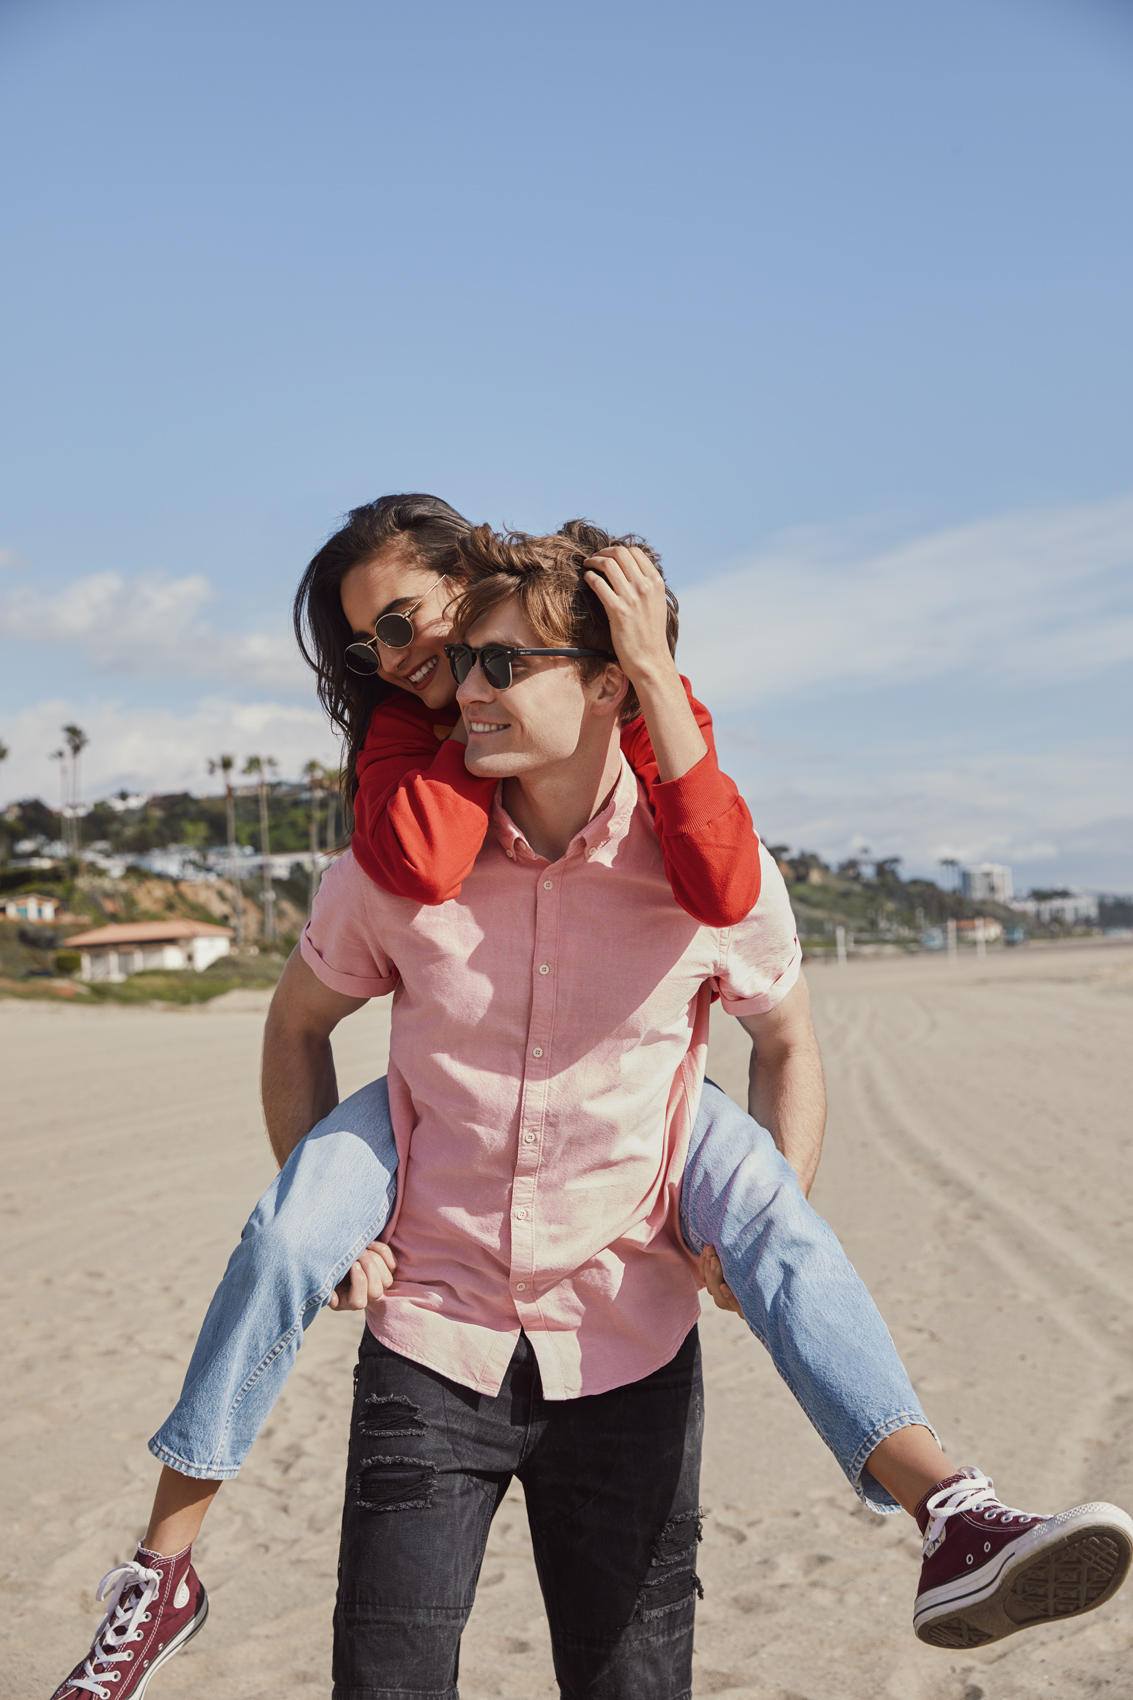 Guy giving a girl a piggy back ride on the beach. Kim Genevieve Los Angeles Lifestyle Photographer